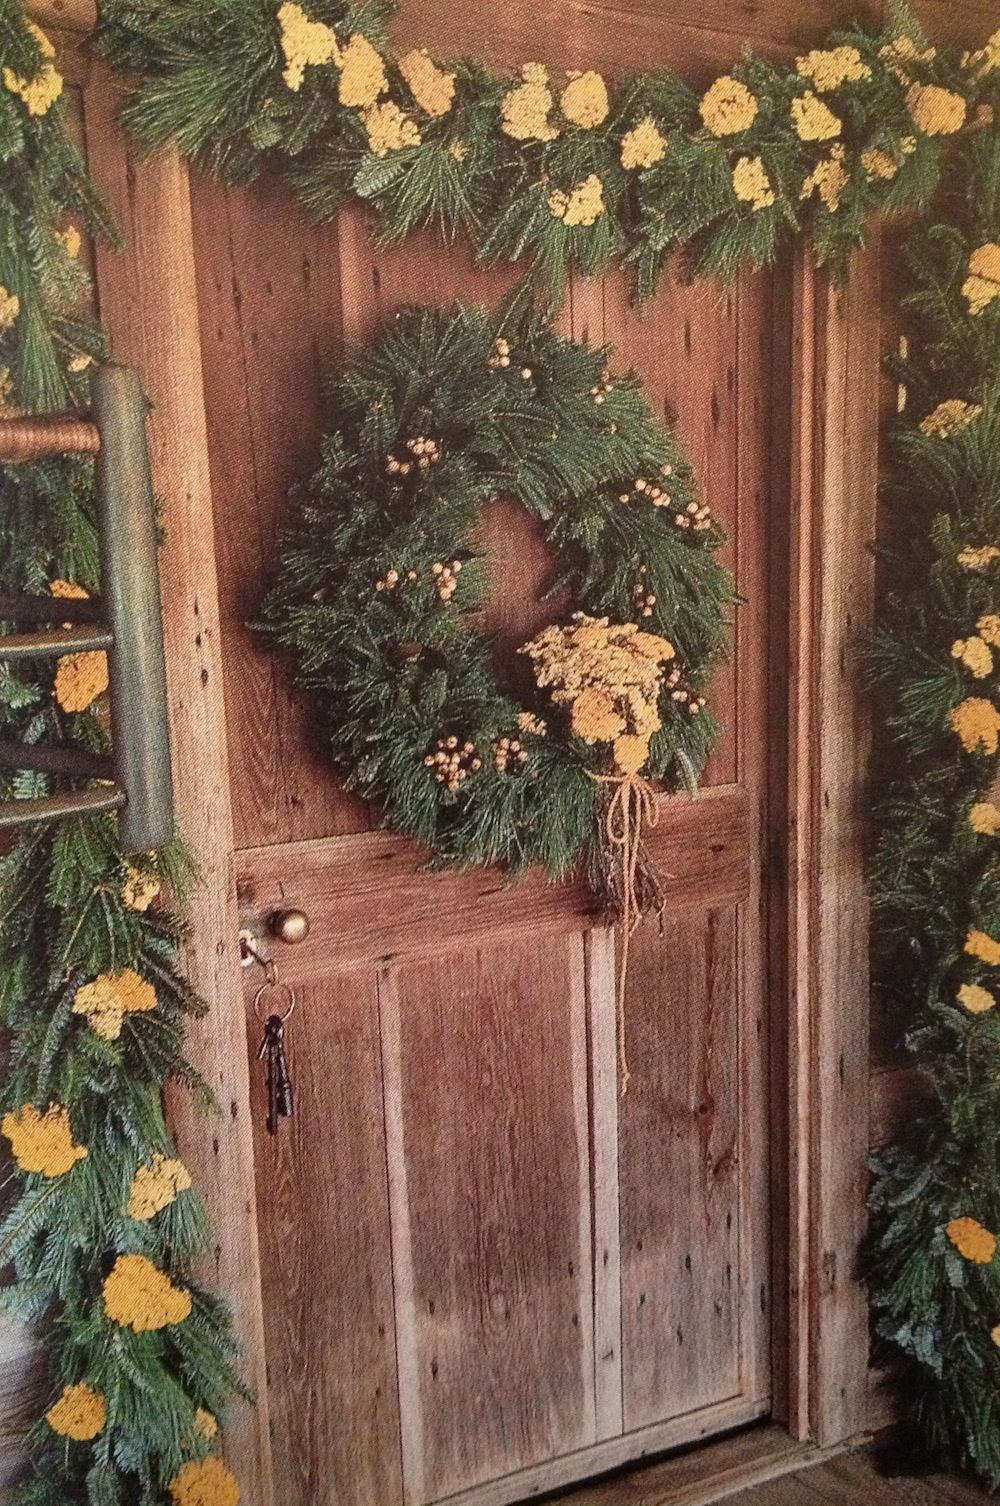 Beautiful Christmas garland and wreath...could use artificial rope greens over living room window and deck window and dining window...add little lights and bling too or antique ornaments kids can make. K.W.